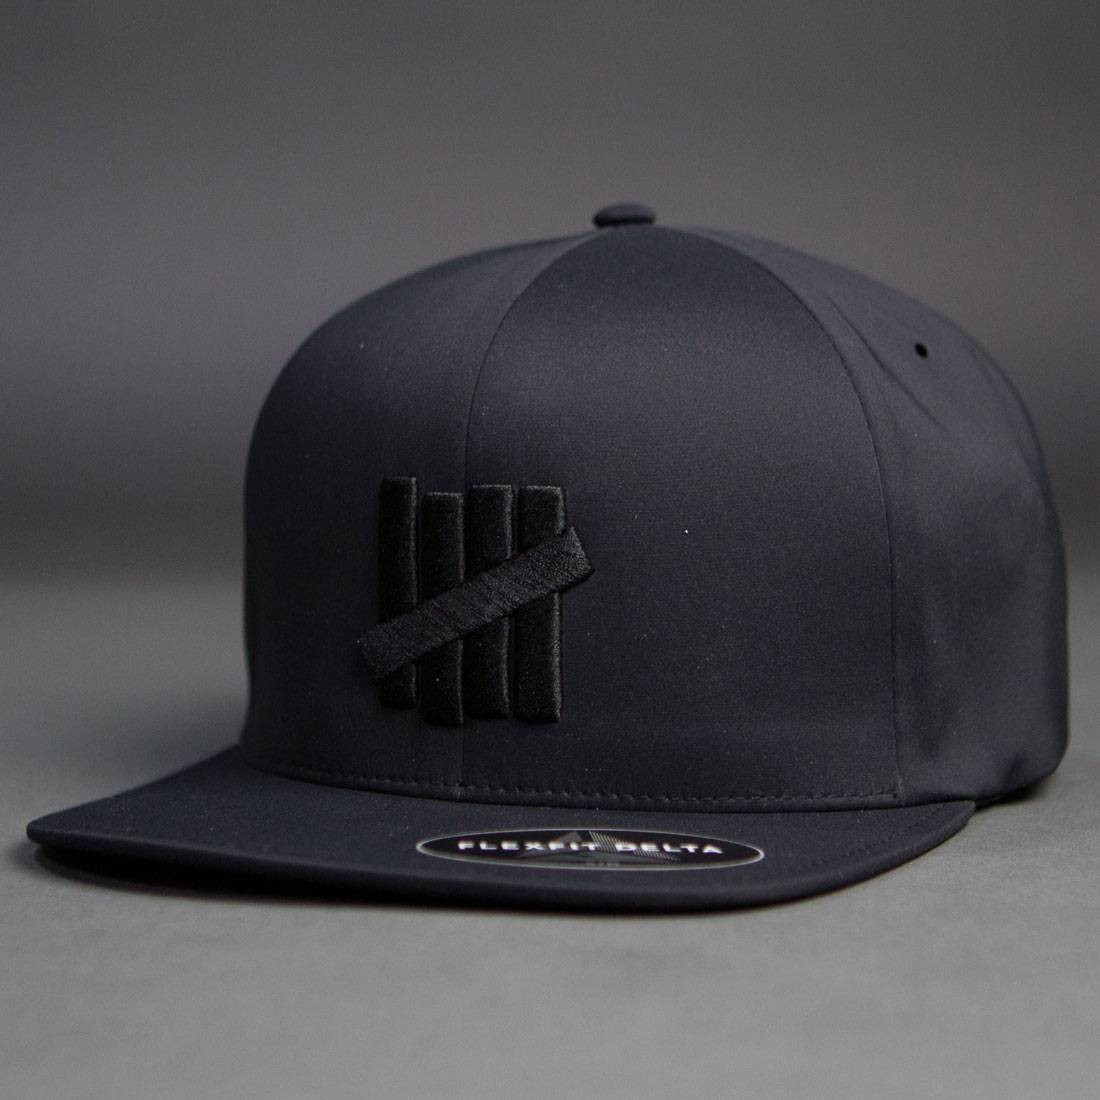 990a6623b7e02 Undefeated 5 Strike Delta Cap black